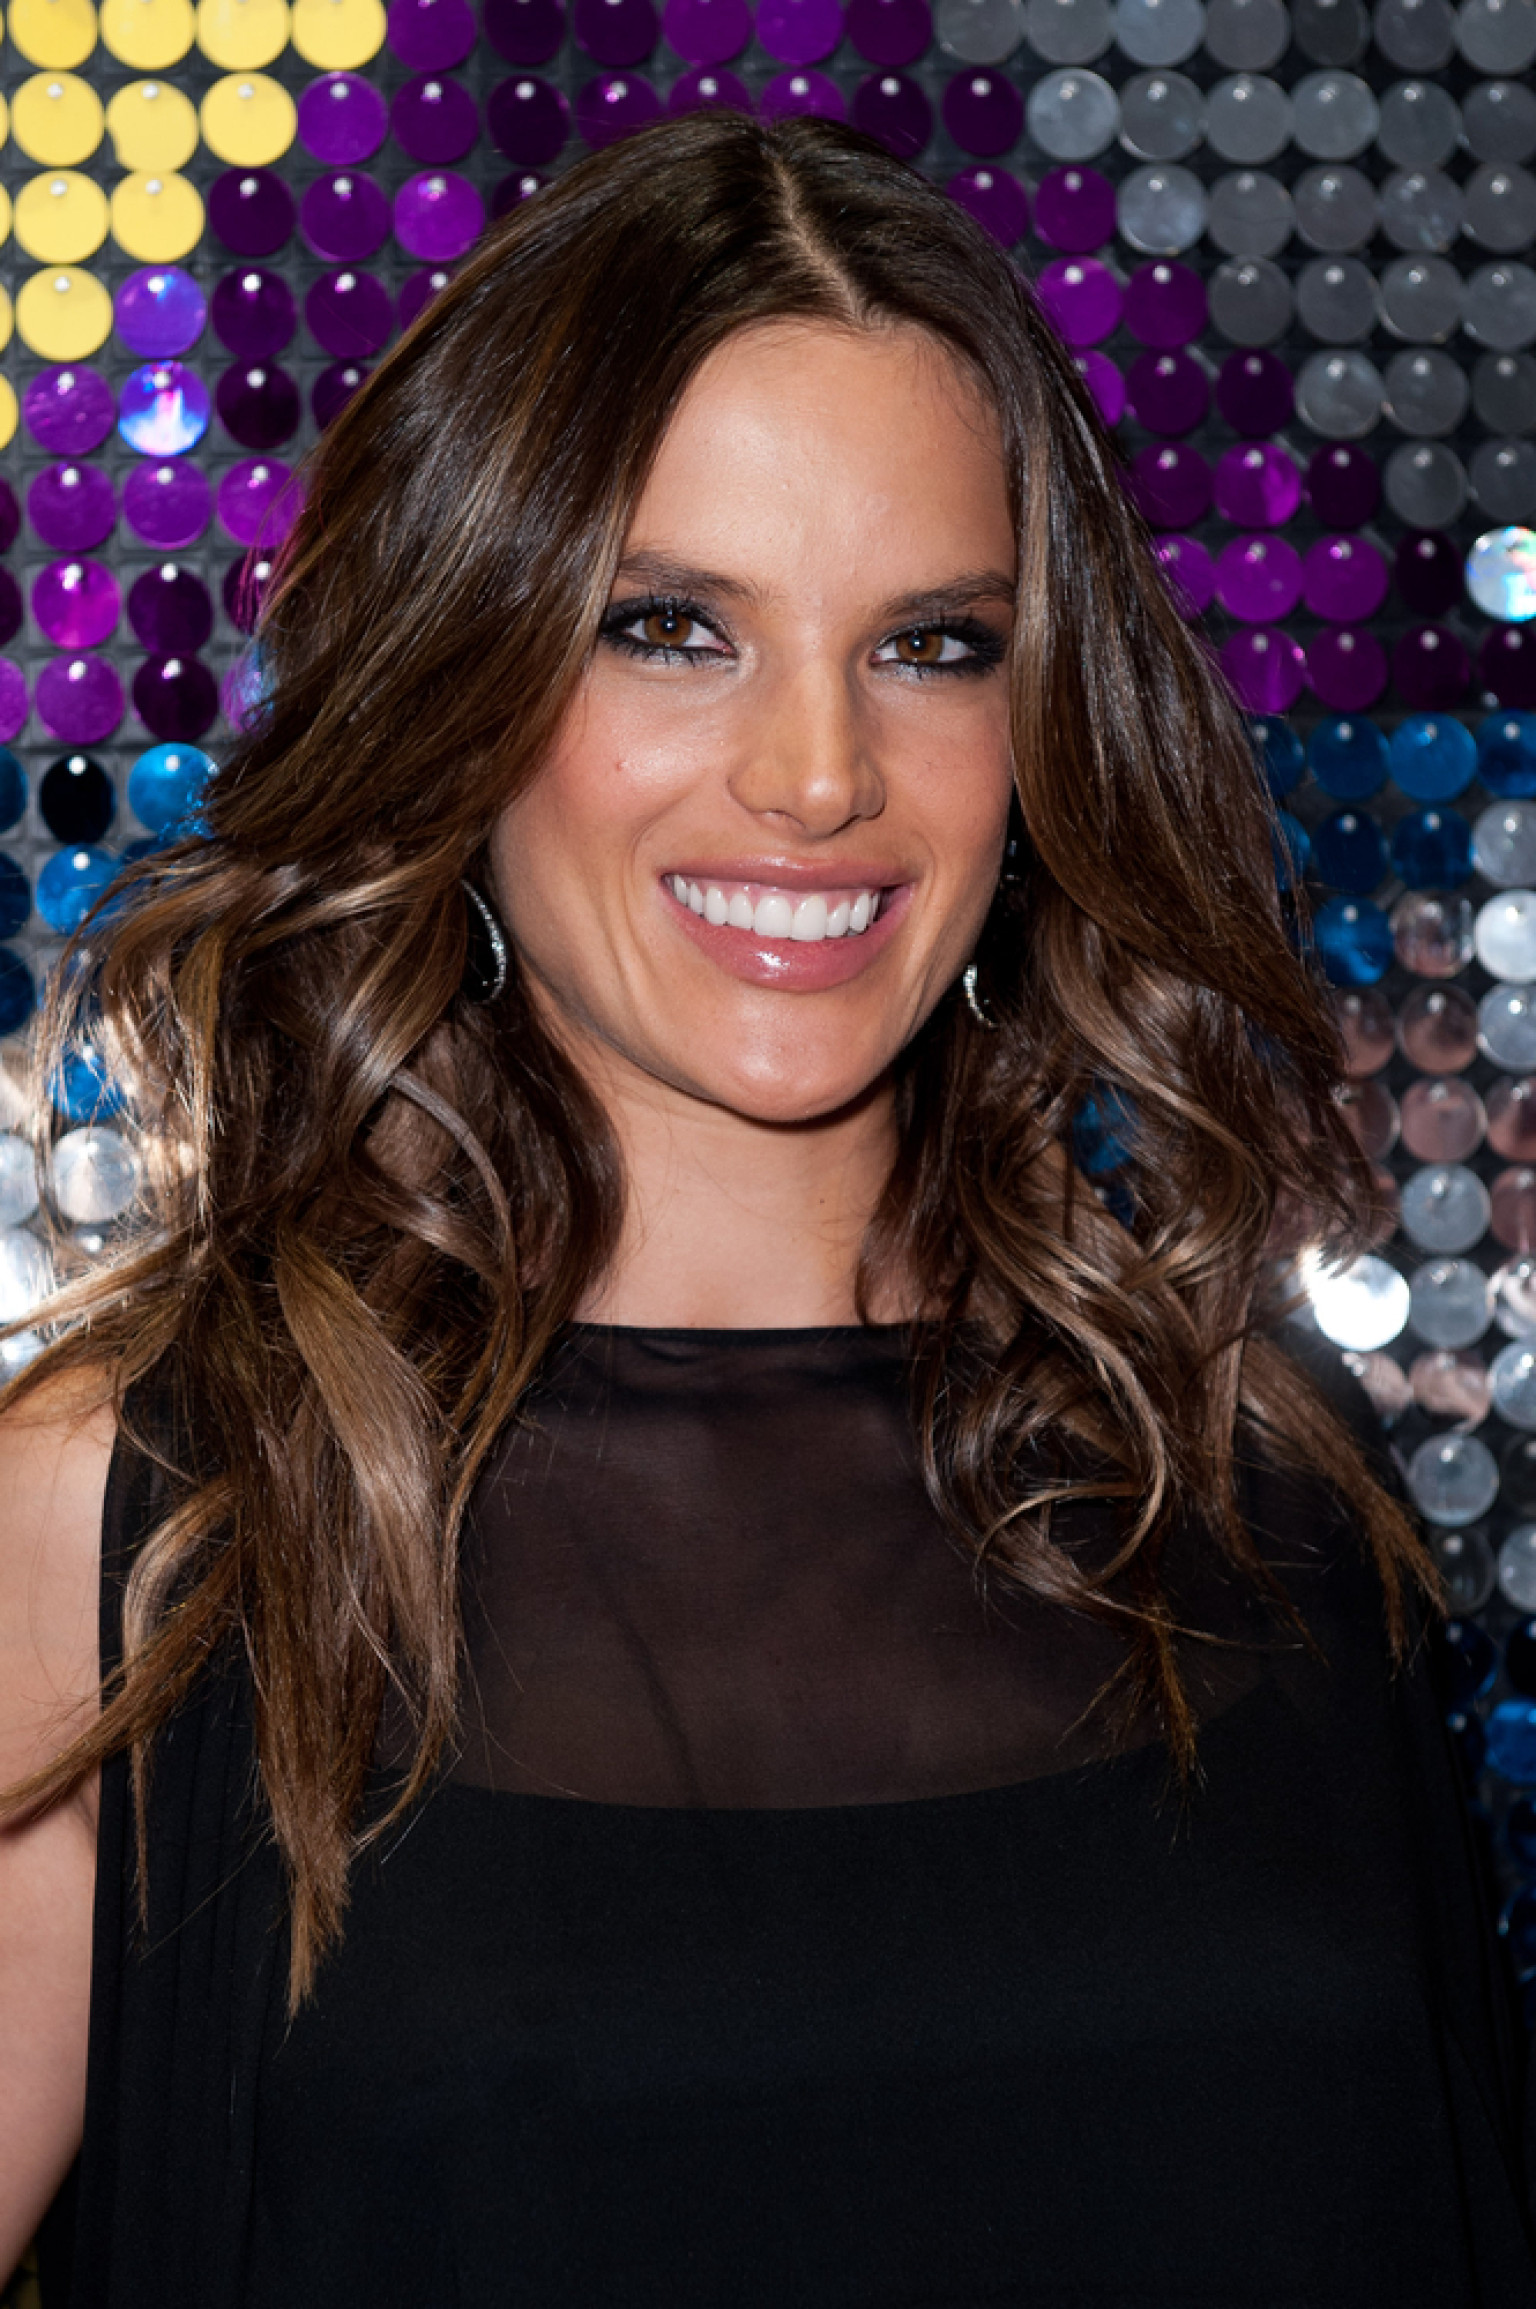 Alessandra Ambrosio Hair Color 14471 Interiordesign